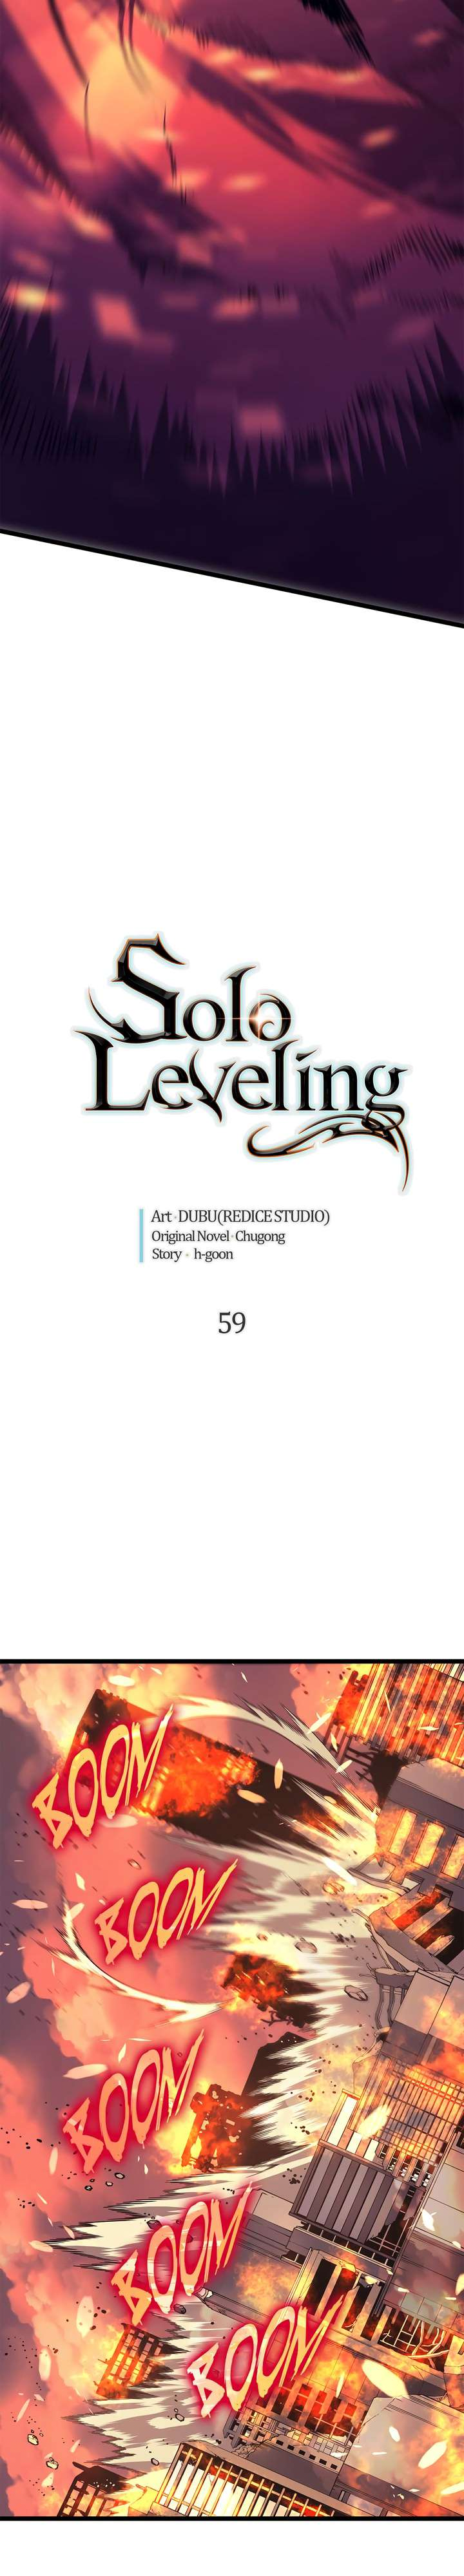 Solo Leveling Chapter 59 Page 2